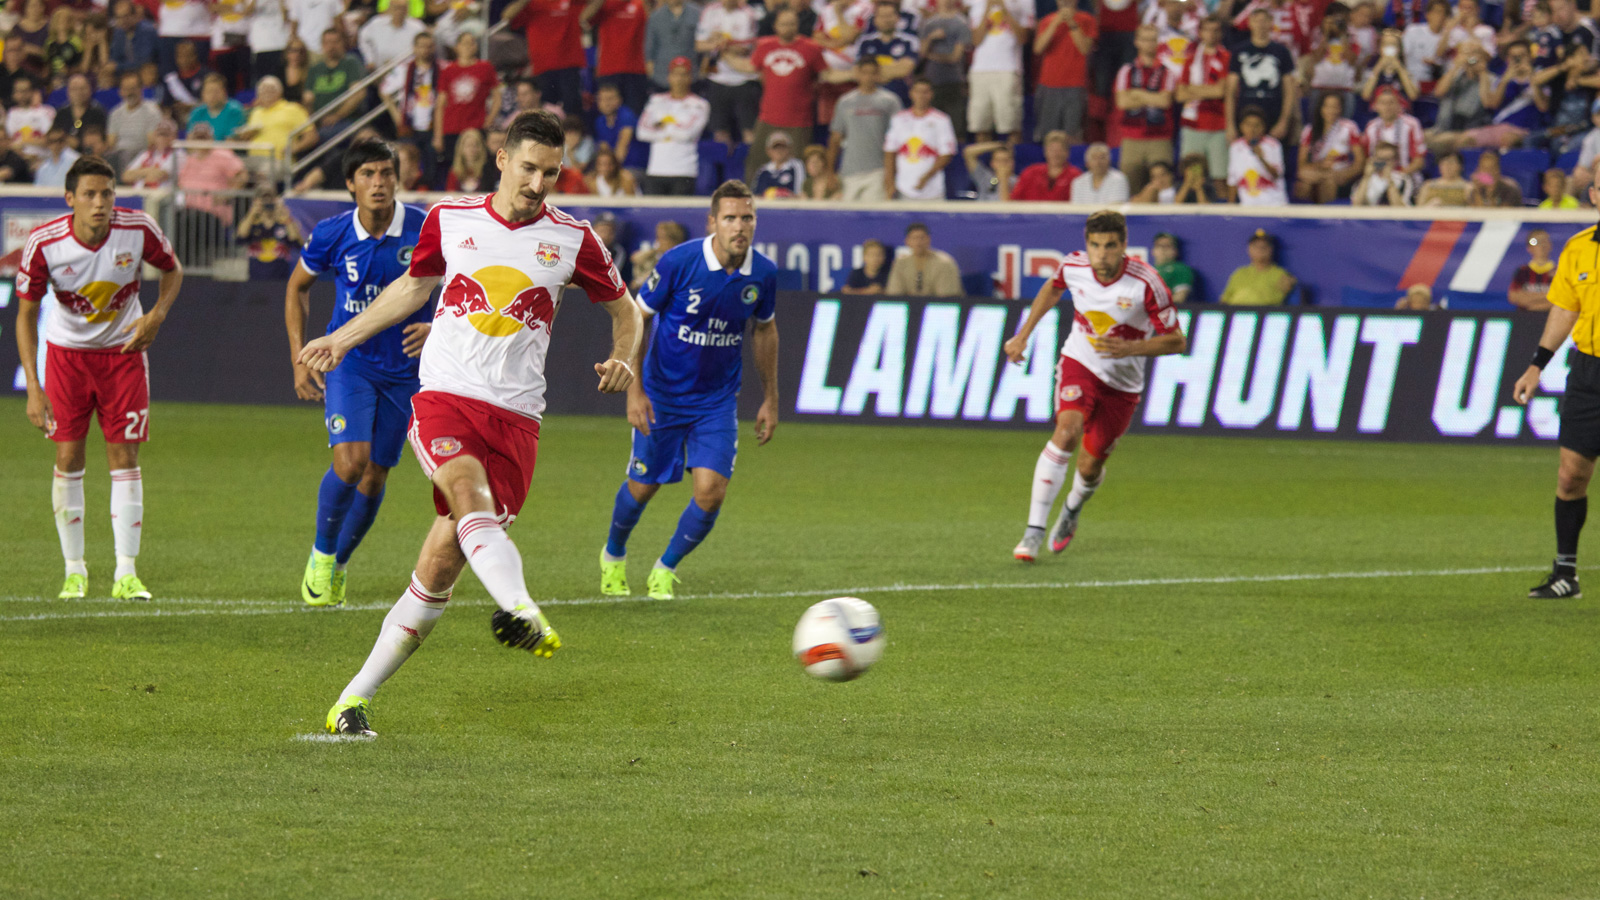 New York Red Bulls midfielder Sacha Kljestan (16) takes and makes the penalty kick, giving his side a 3-1 advantage over the Cosmos in the 54th minute of their 2015 U.S. Open Cup fifth-round match.